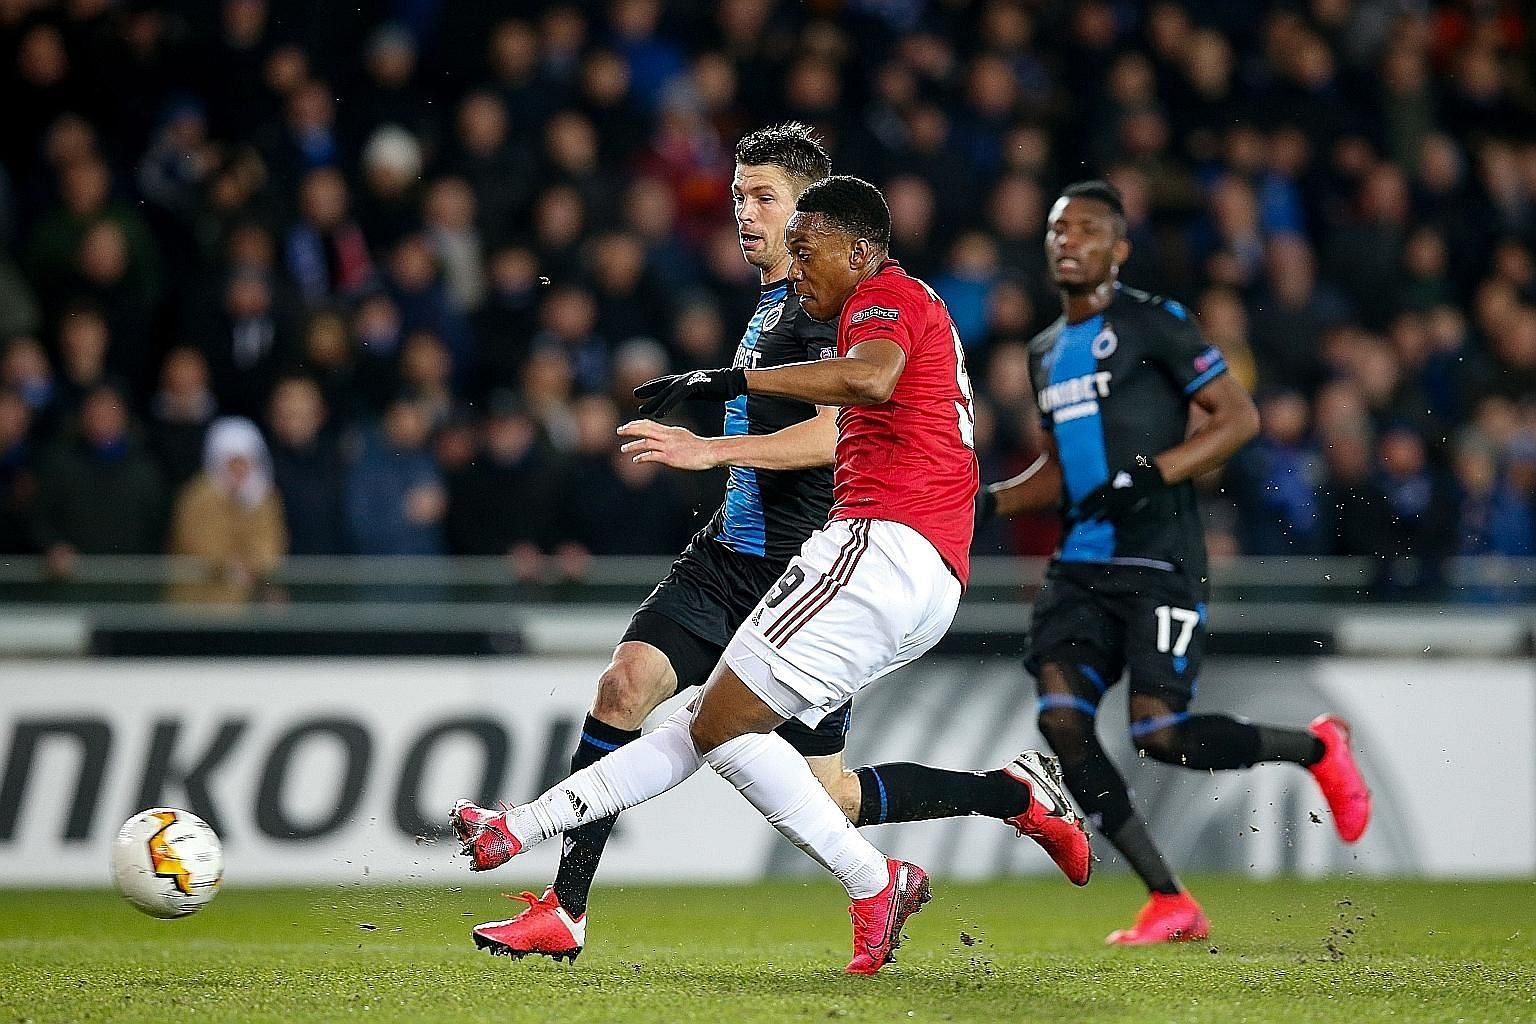 Manchester United forward Anthony Martial equalising in the 1-1 Europa League last-32, first-leg draw against Club Brugge at the Jan Breydel Stadium on Thursday. He needs three more goals to tie his season-best of 17. PHOTO: AGENCE FRANCE-PRESSE